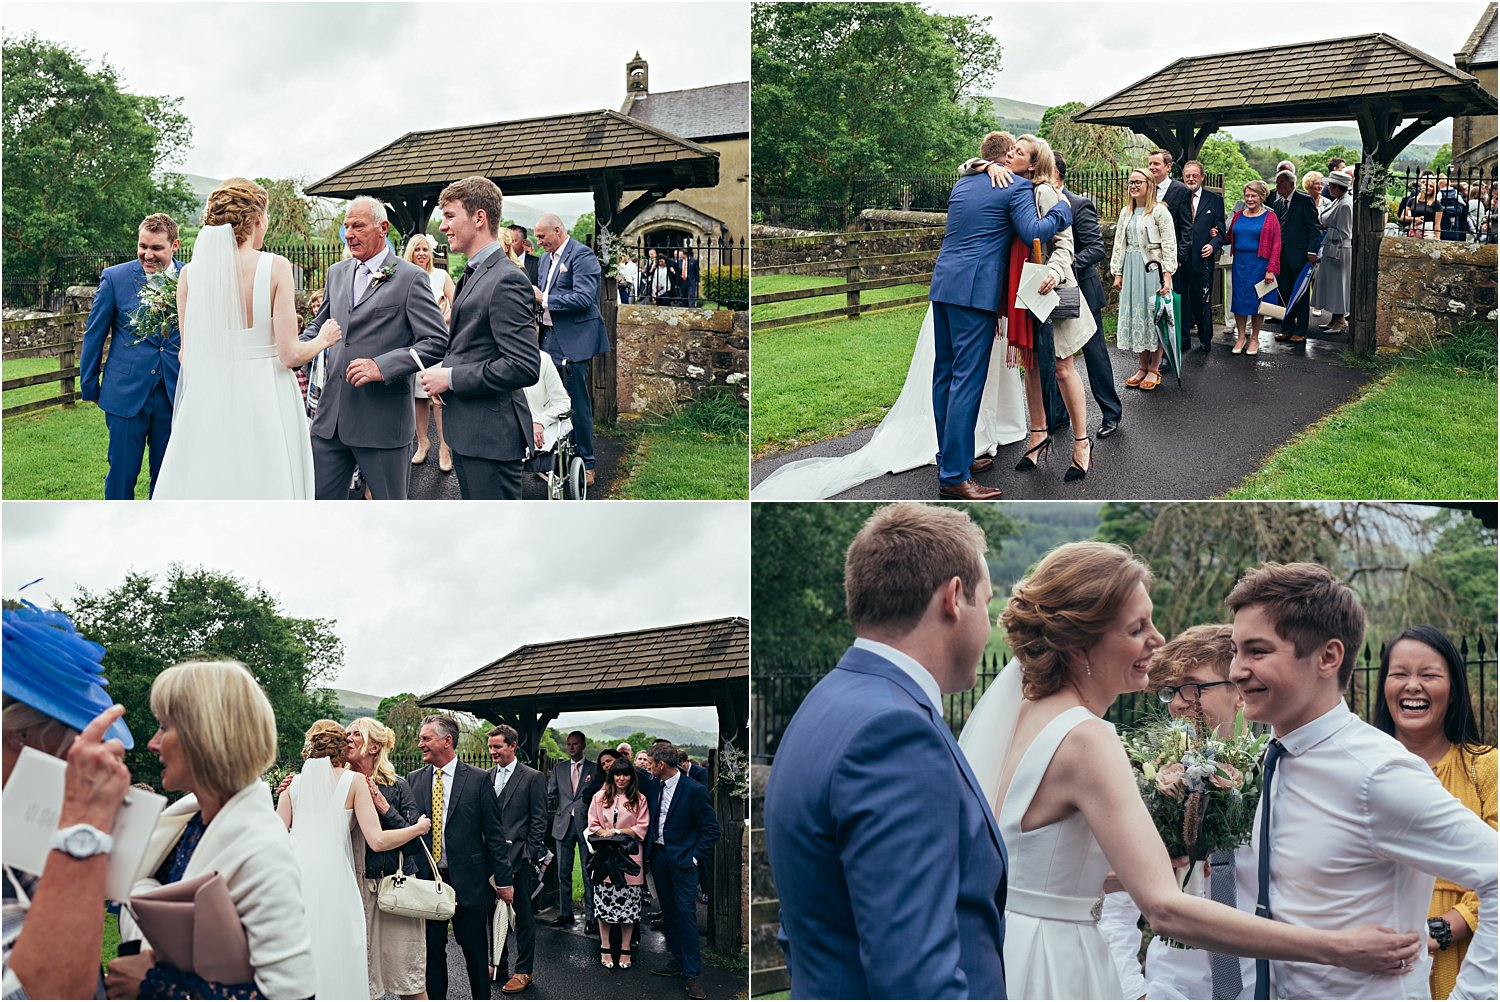 Bride and groom greet their wedding guests after their Lancashire wedding ceremony